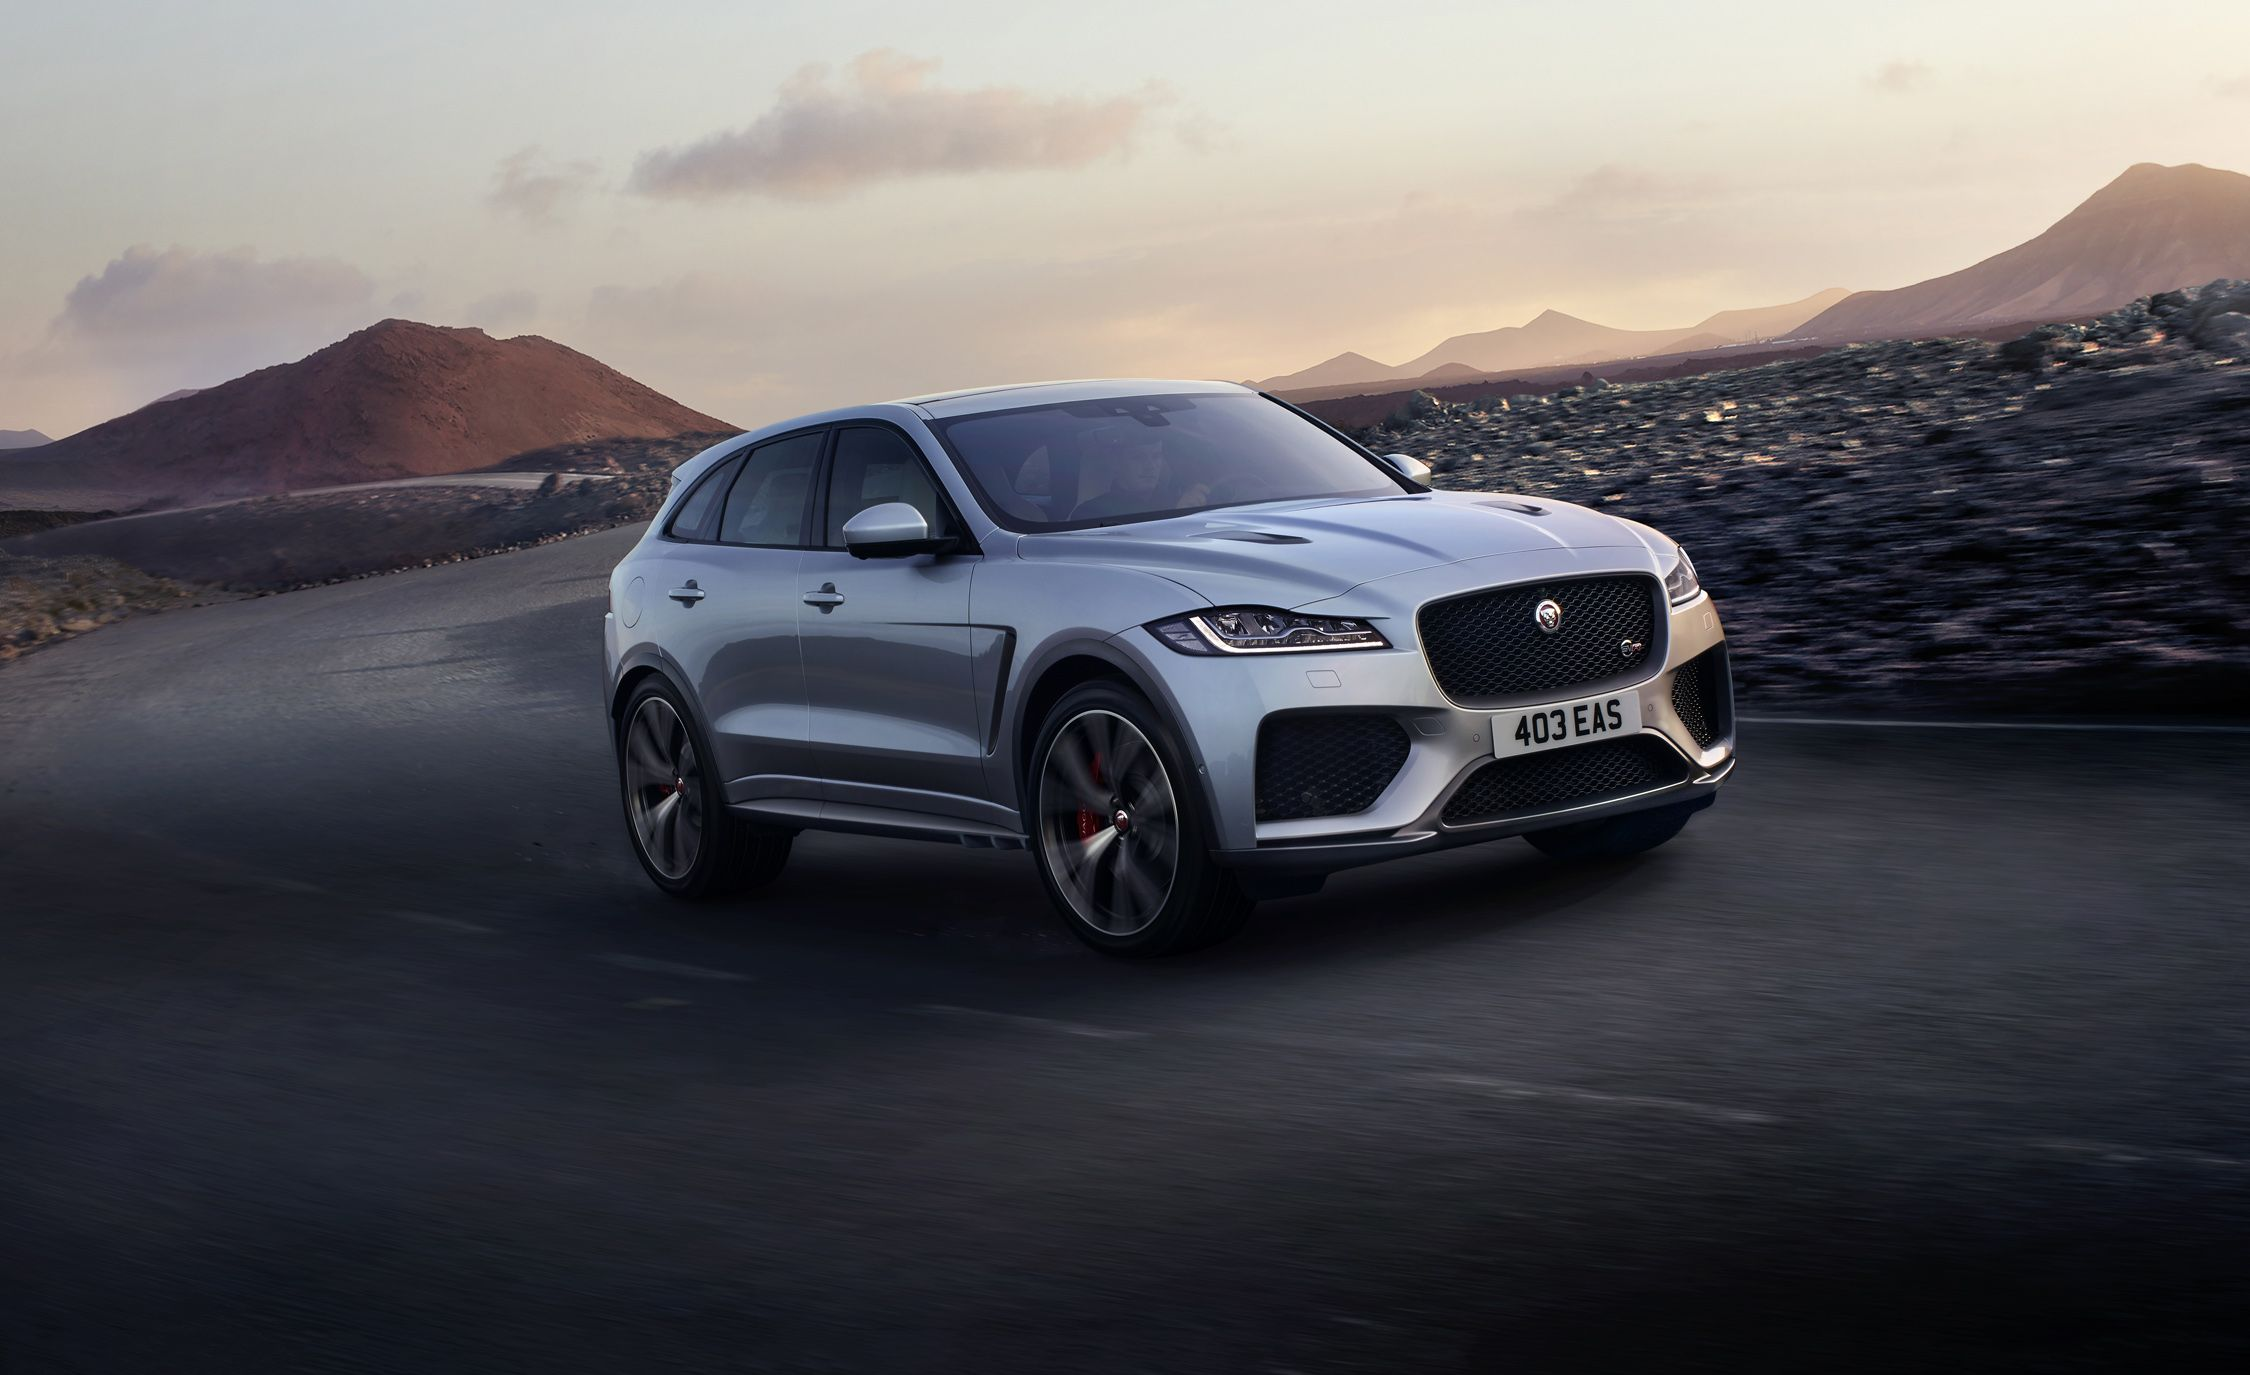 2019 Jaguar F Pace Svr Packs 550 Hp News Car And Driver